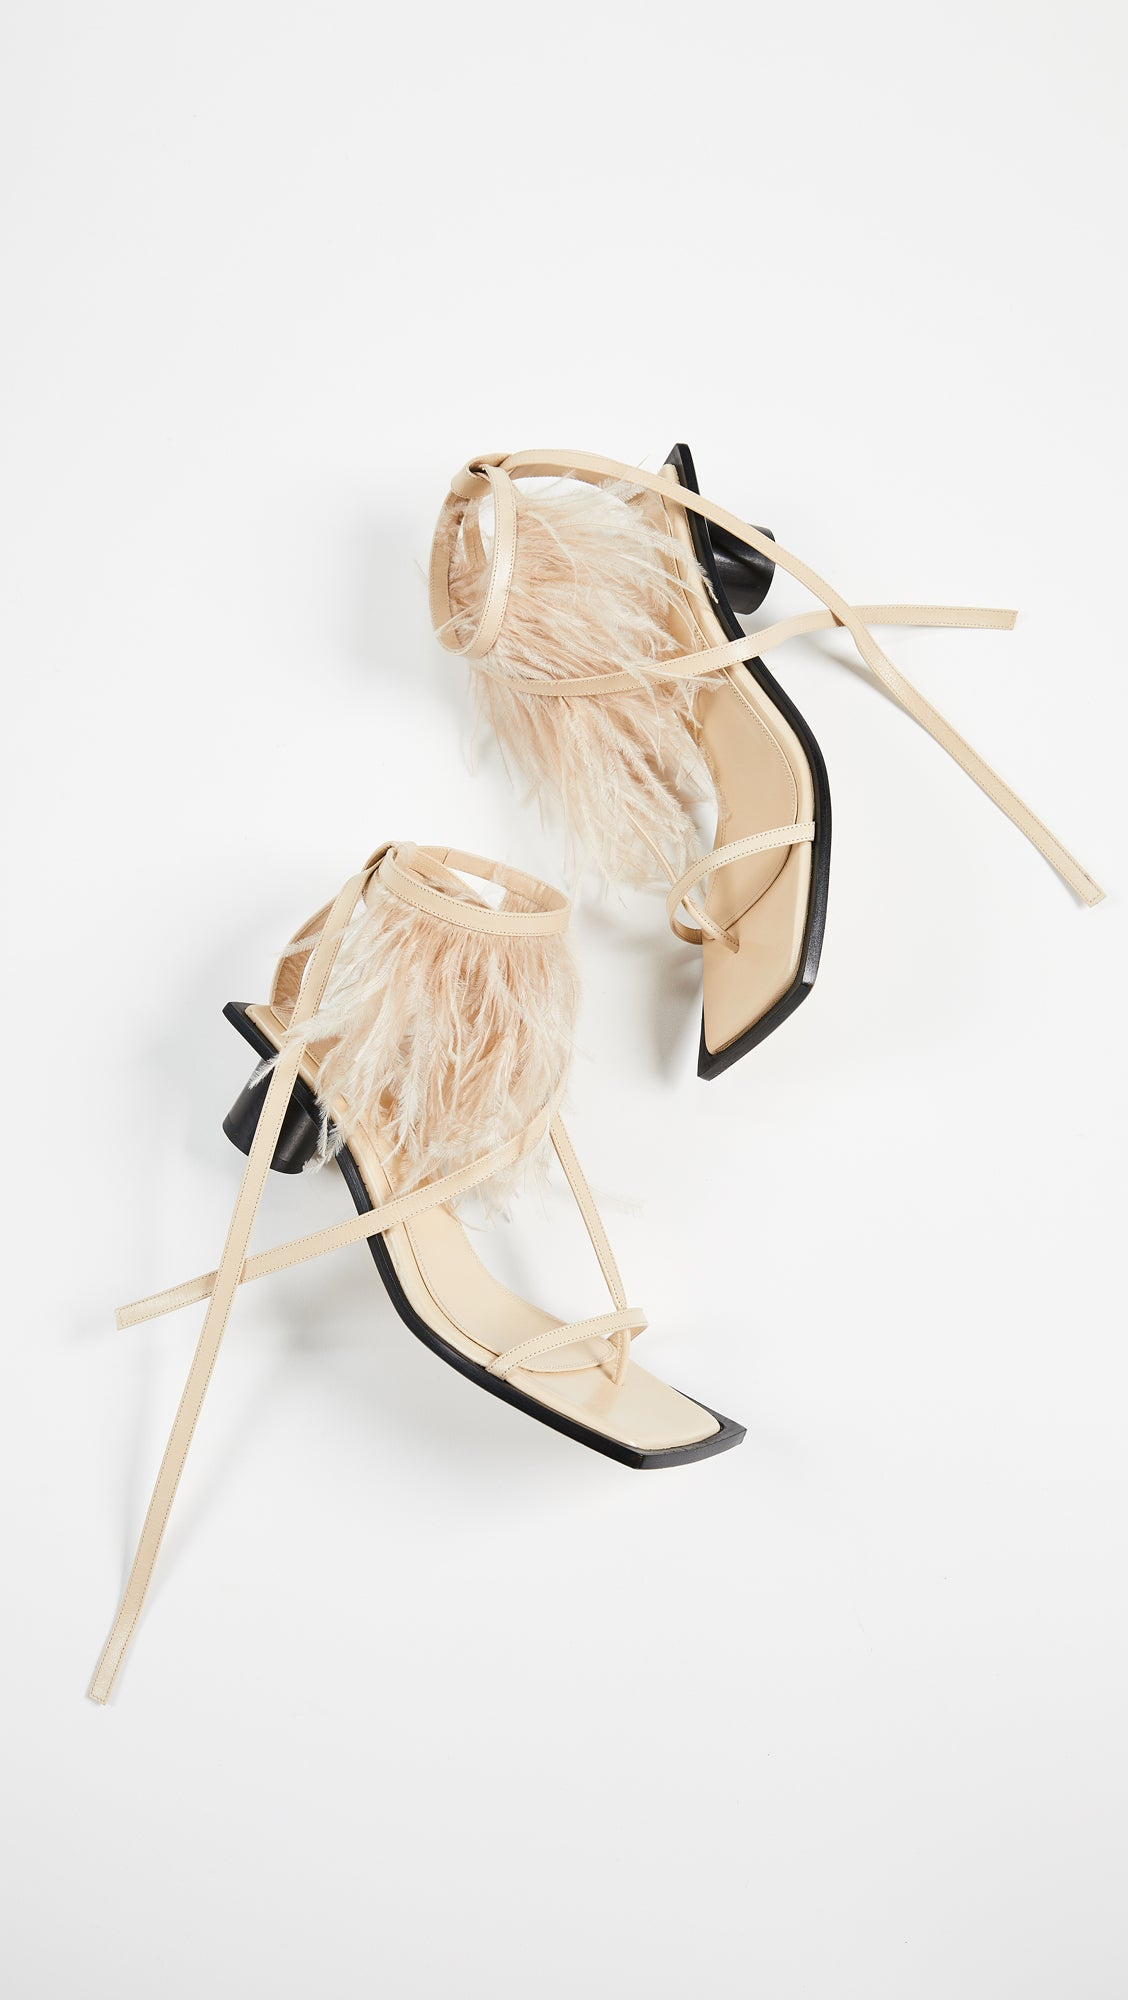 Helmut Lang Gladiator Feather Mid Heel Sandals, Size 39, US 9 - secondfirst